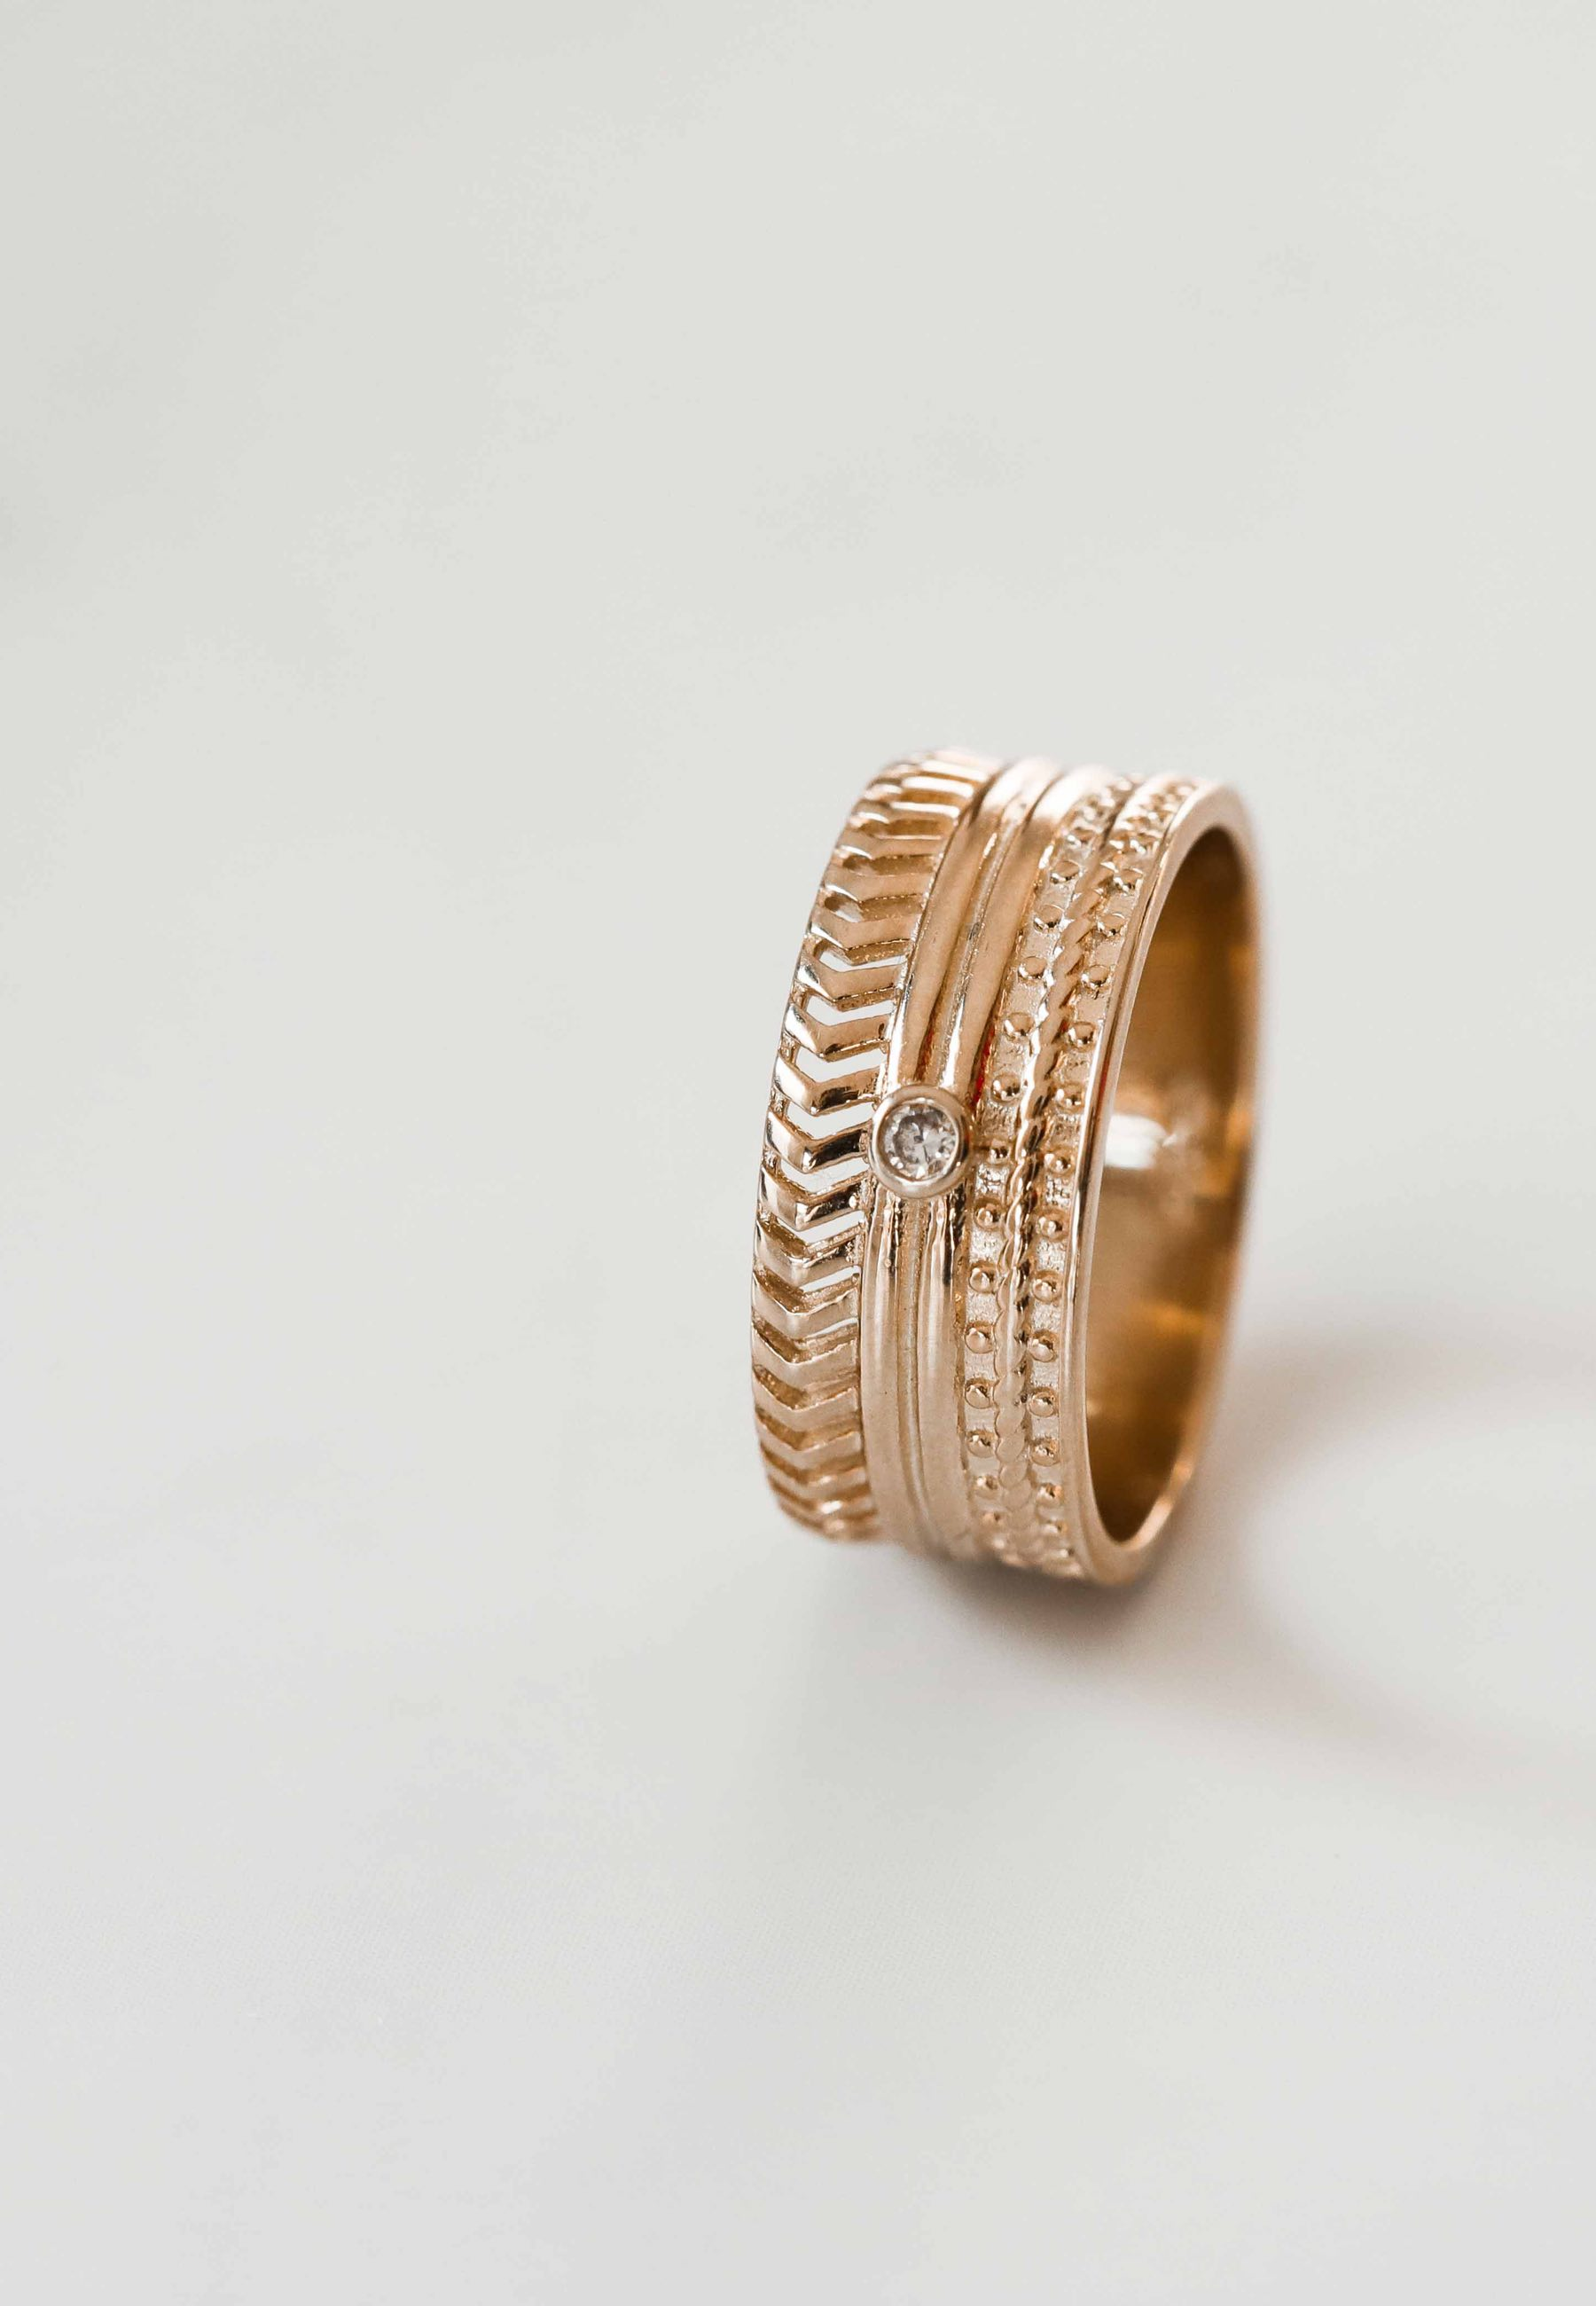 BAROQUE gold ring